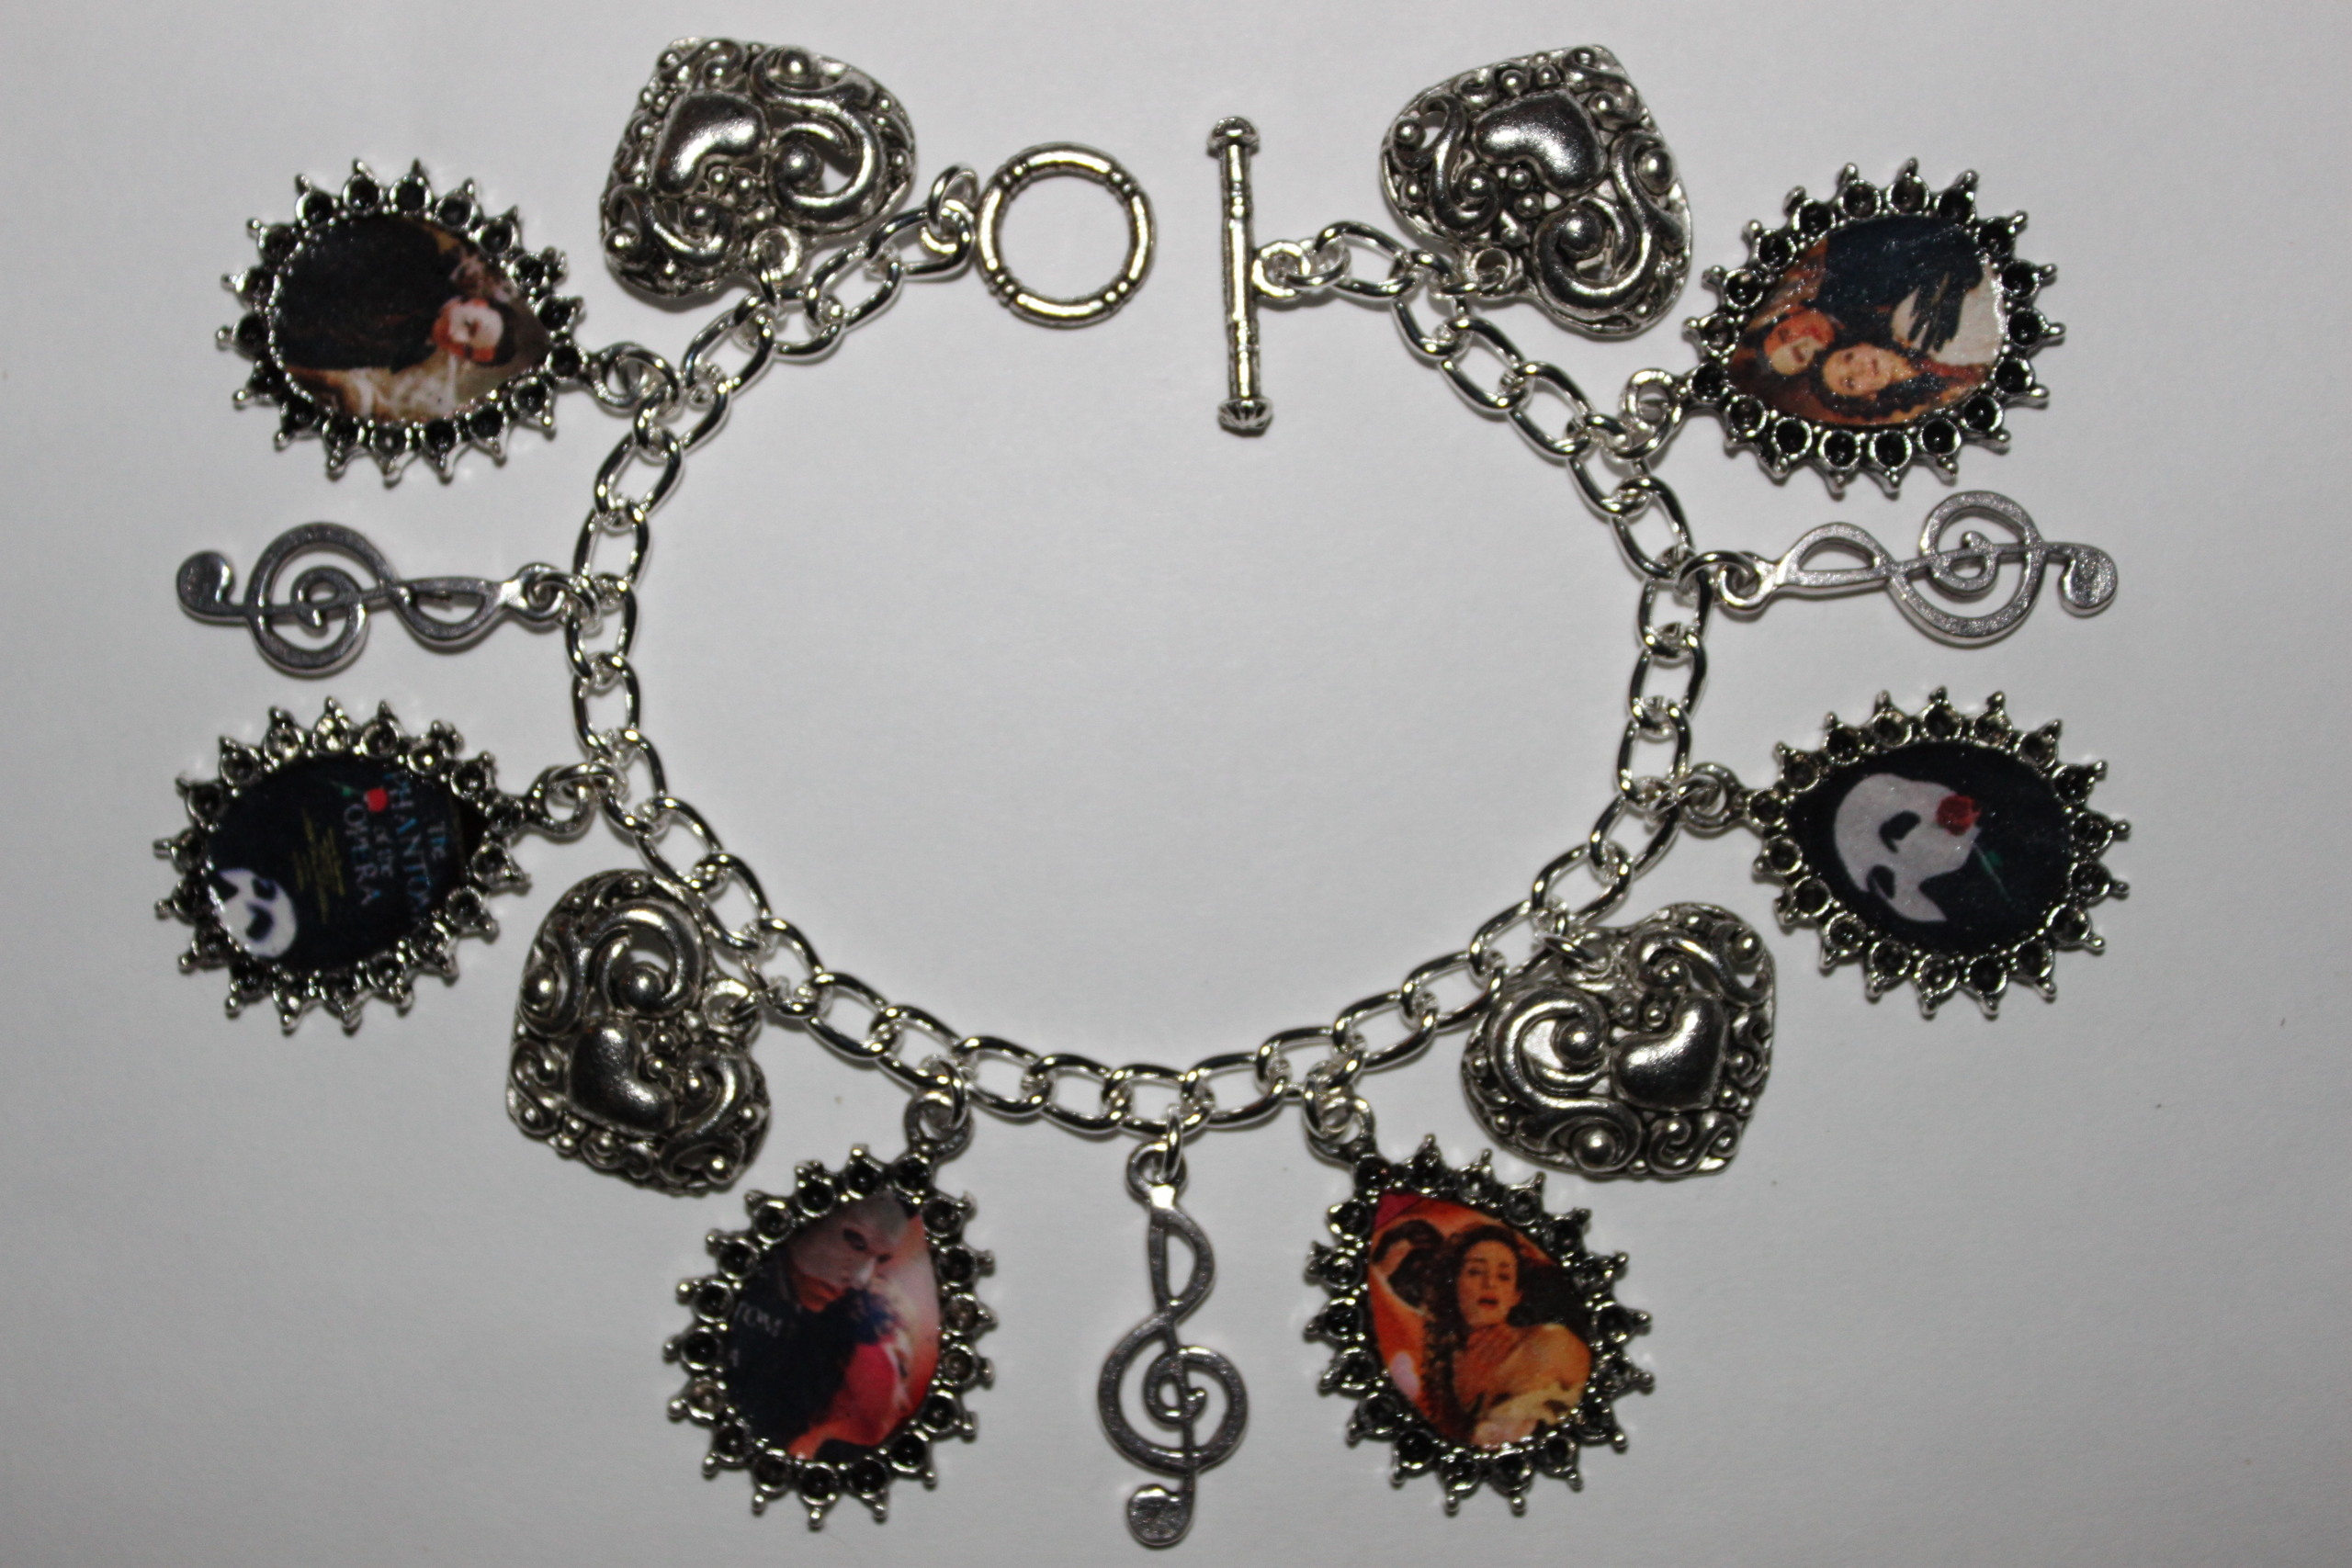 Phantom of the Opera Charm Bracelet